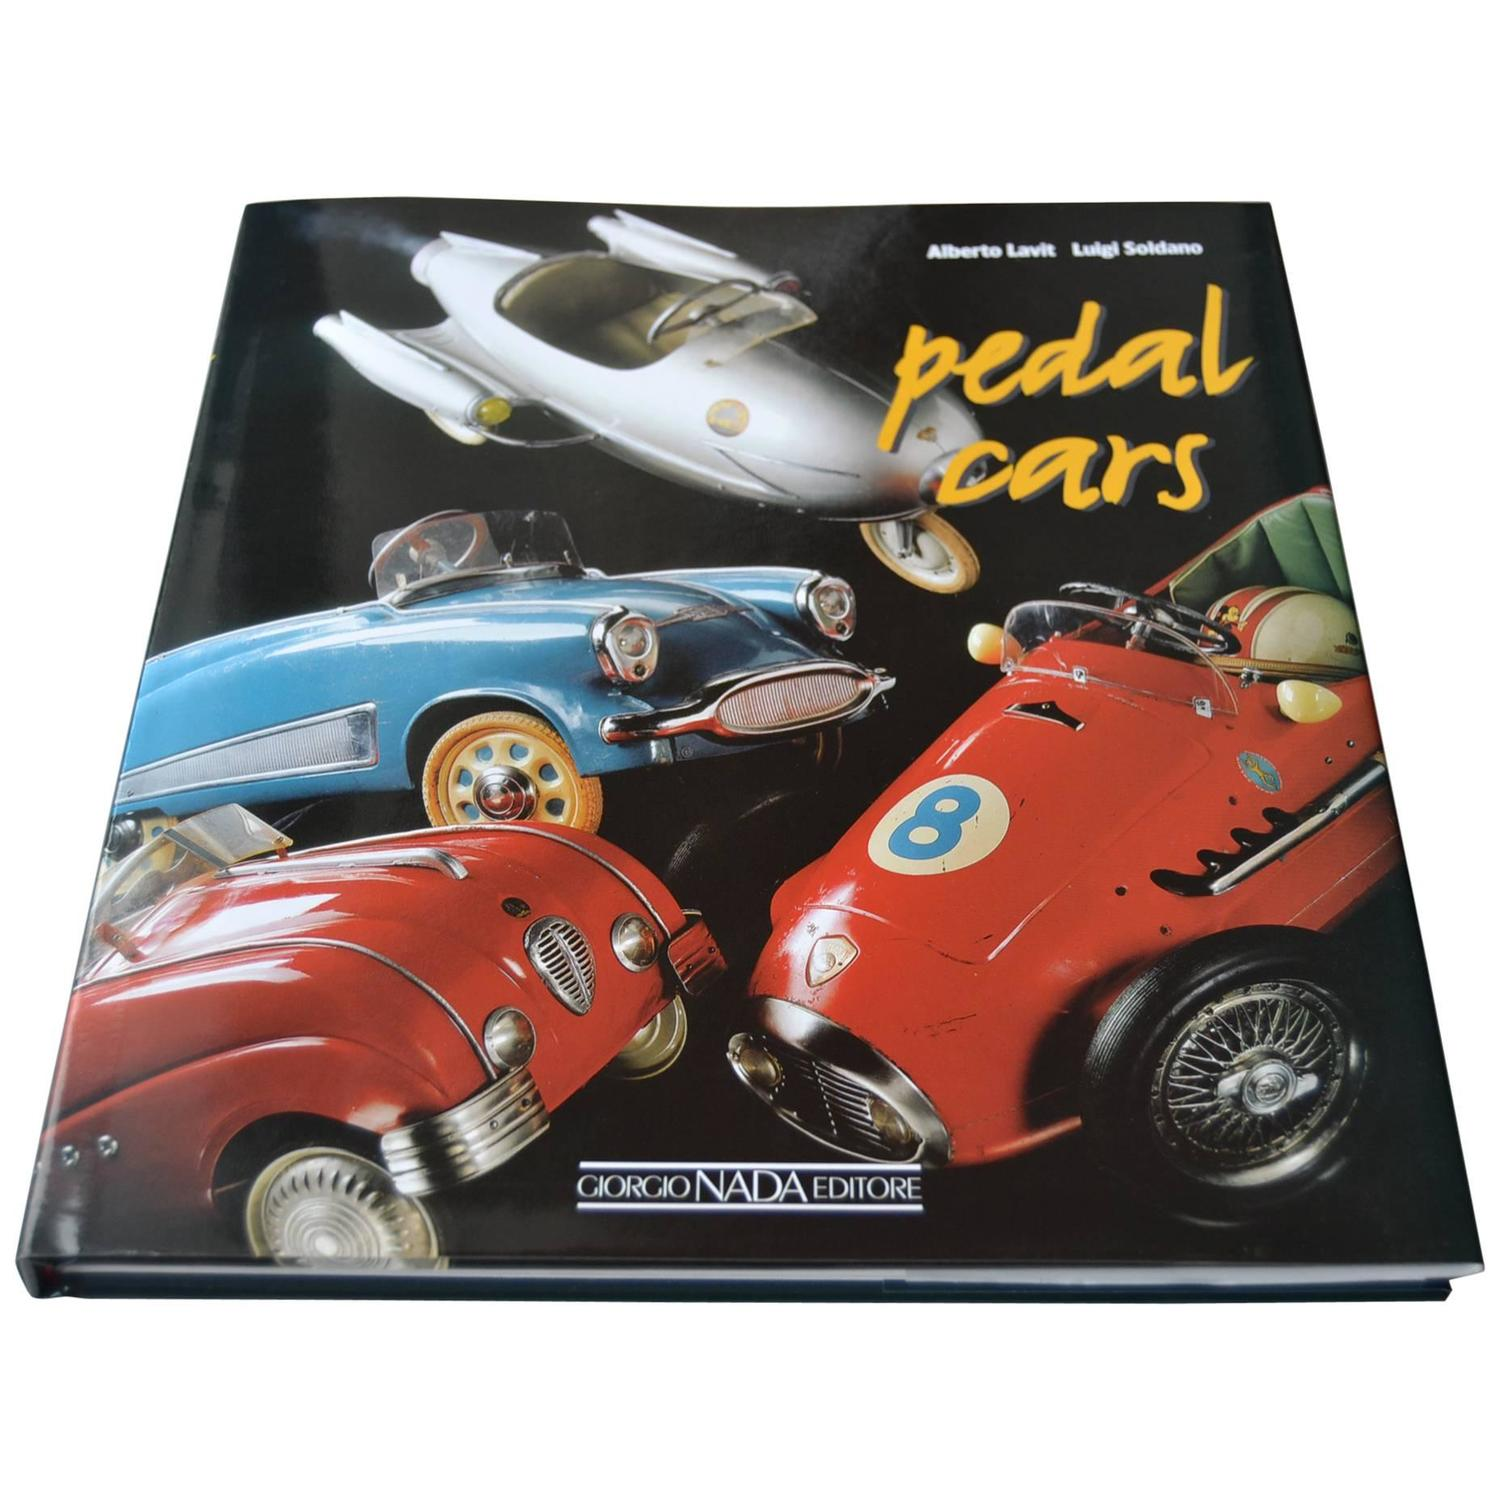 Italian Pedal Cars Book By Alberto Lavit For Sale At